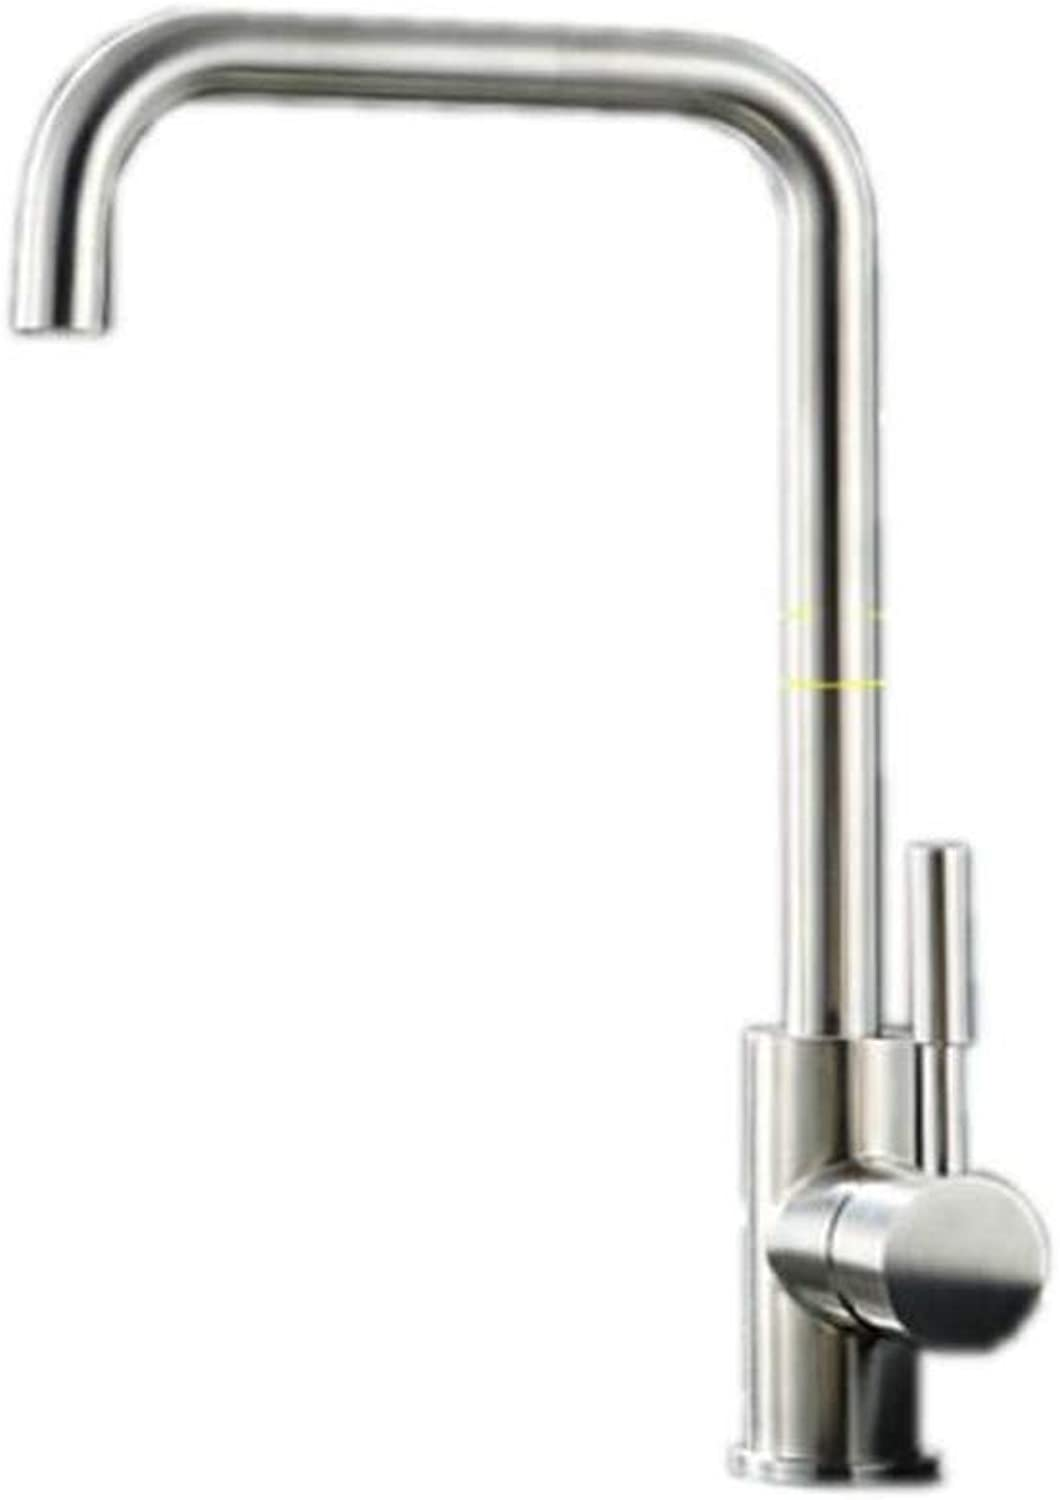 Taps Mixer?Swivel?Faucet Sink Stainless Steel Kitchen Sink Hot and Cold Faucet Laundry Pool Sink Faucet Can Be redated